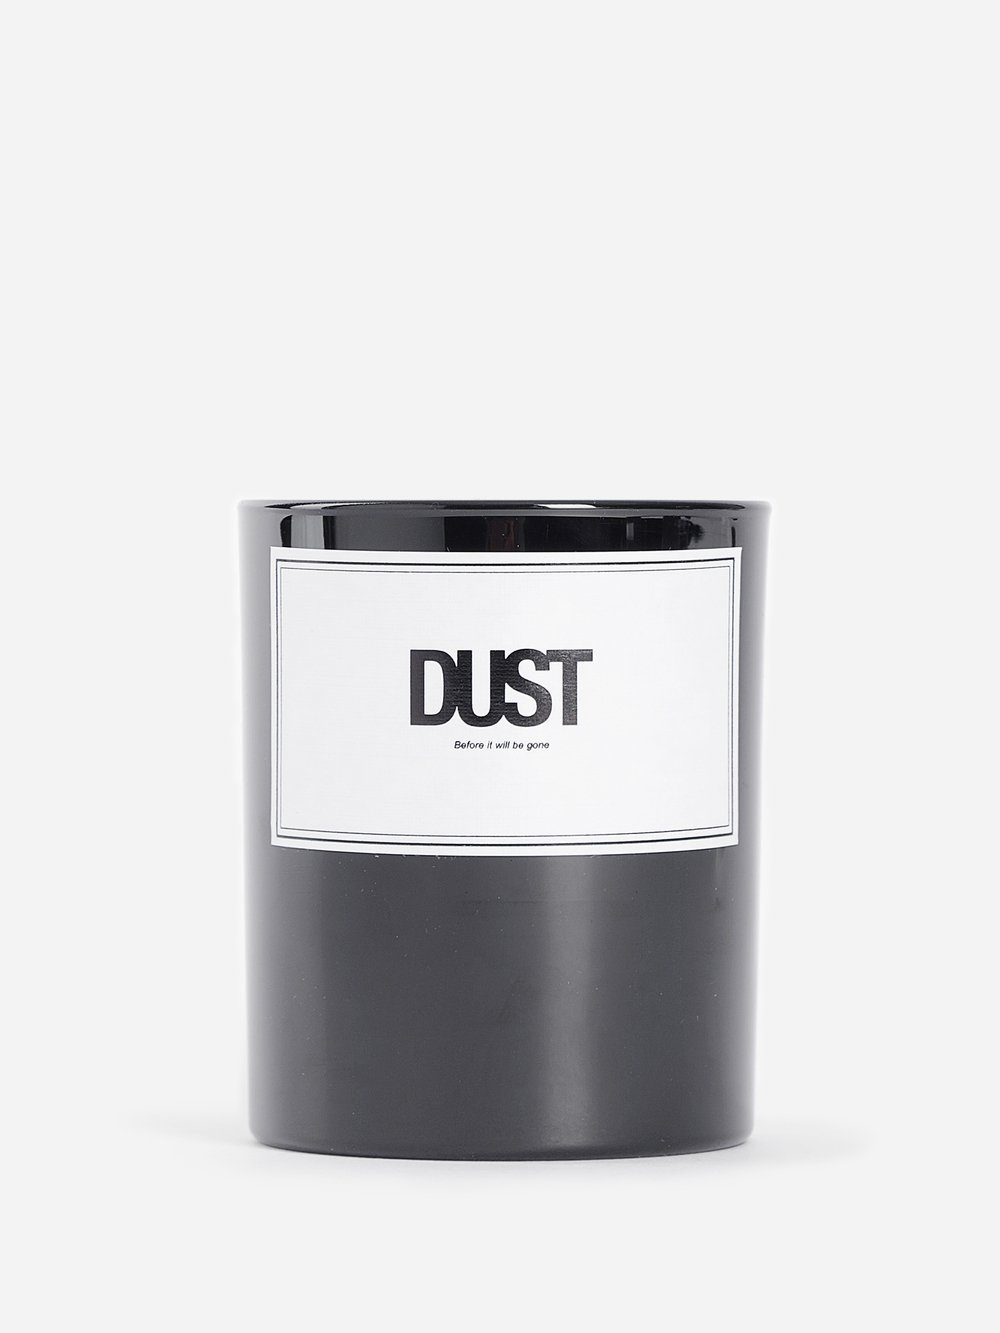 DUSTCANDLE image